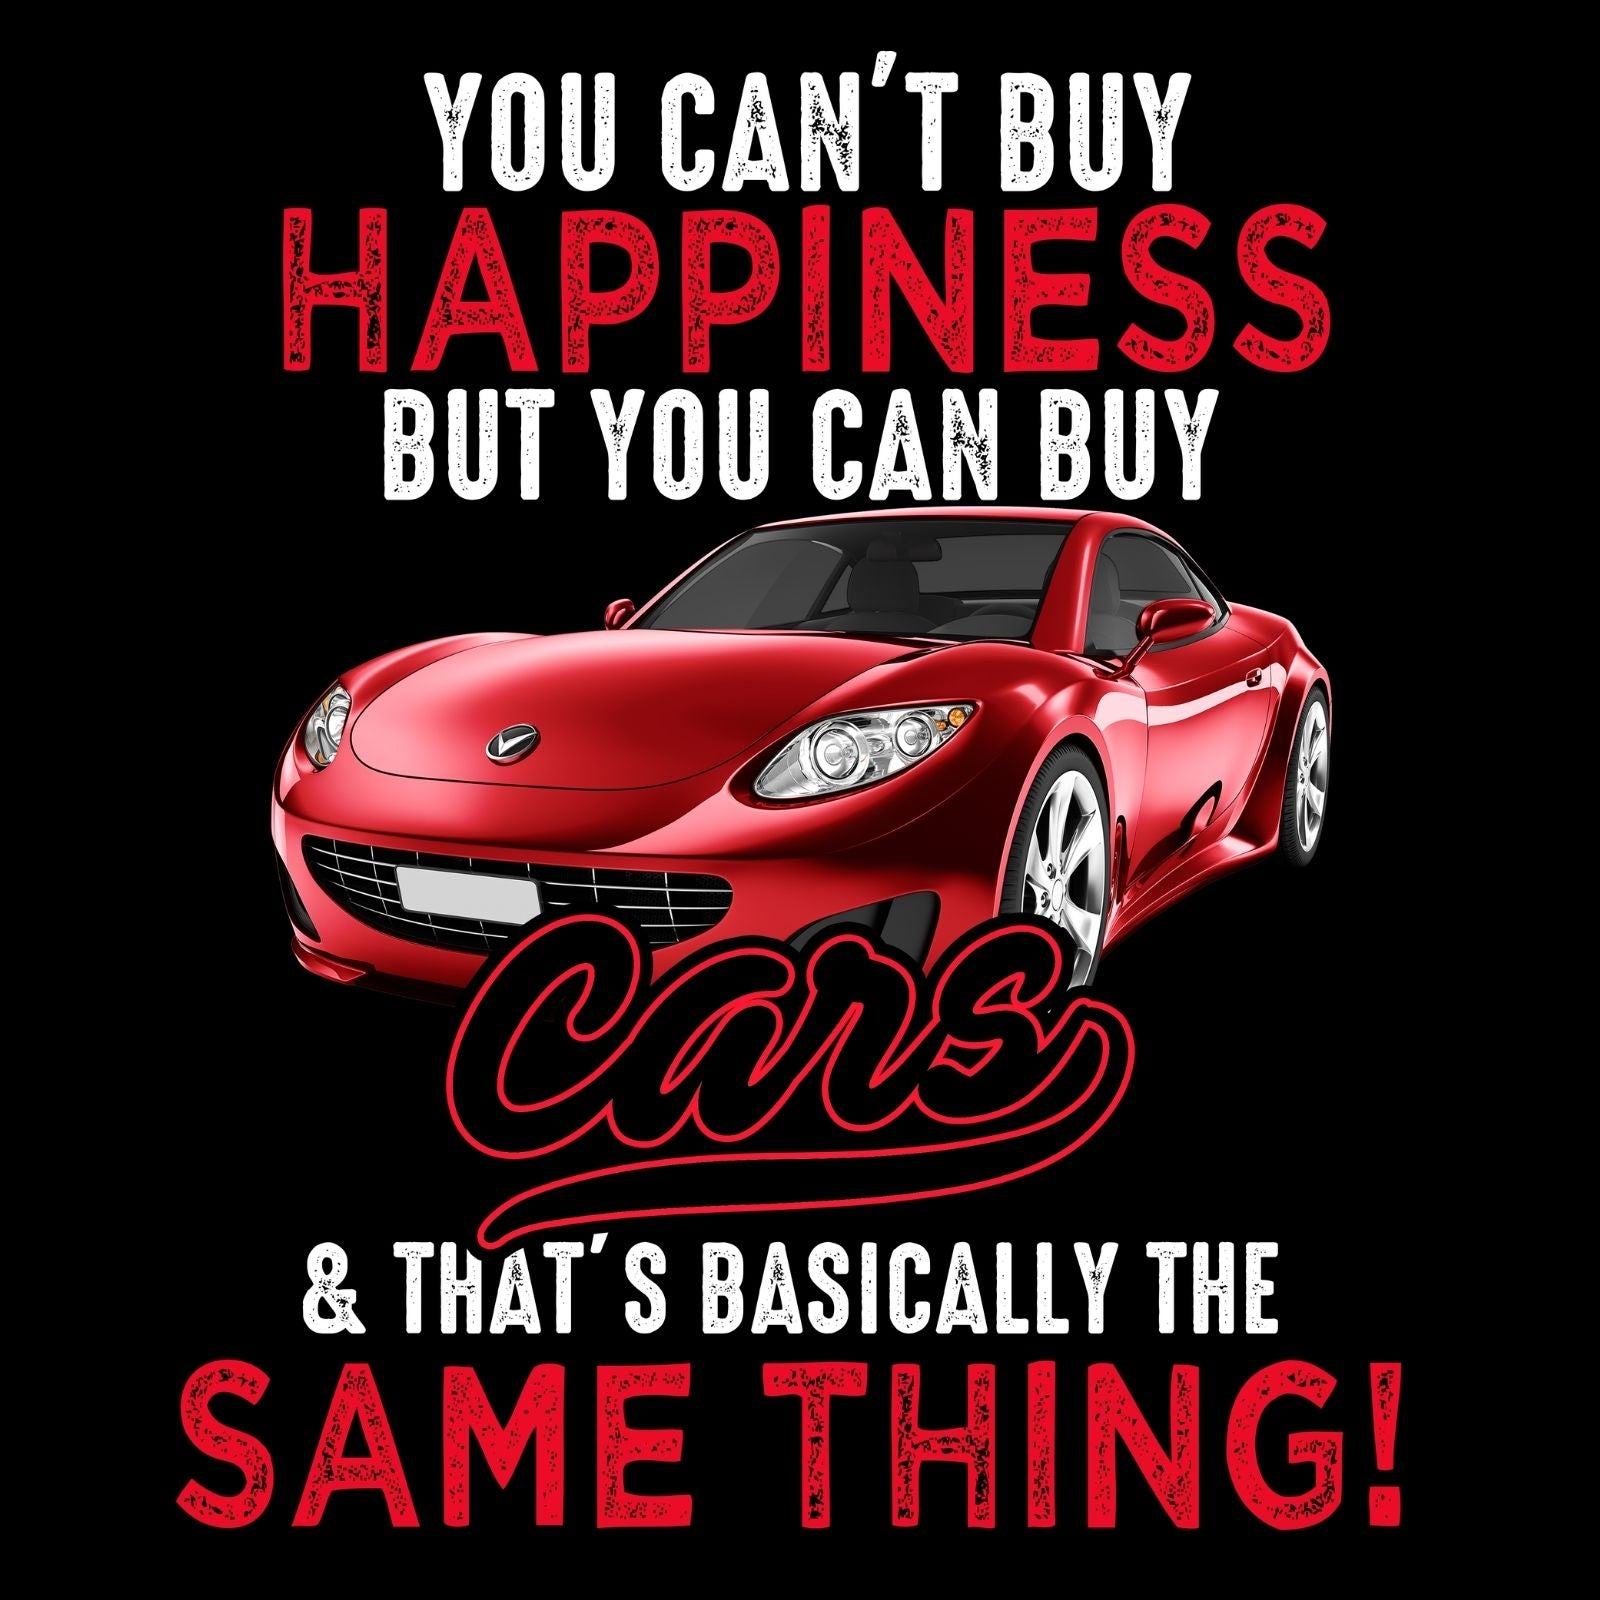 You Can't Buy Happiness But You Can Buy Cars & That's Basically The Same Thing - Bastard Graphics